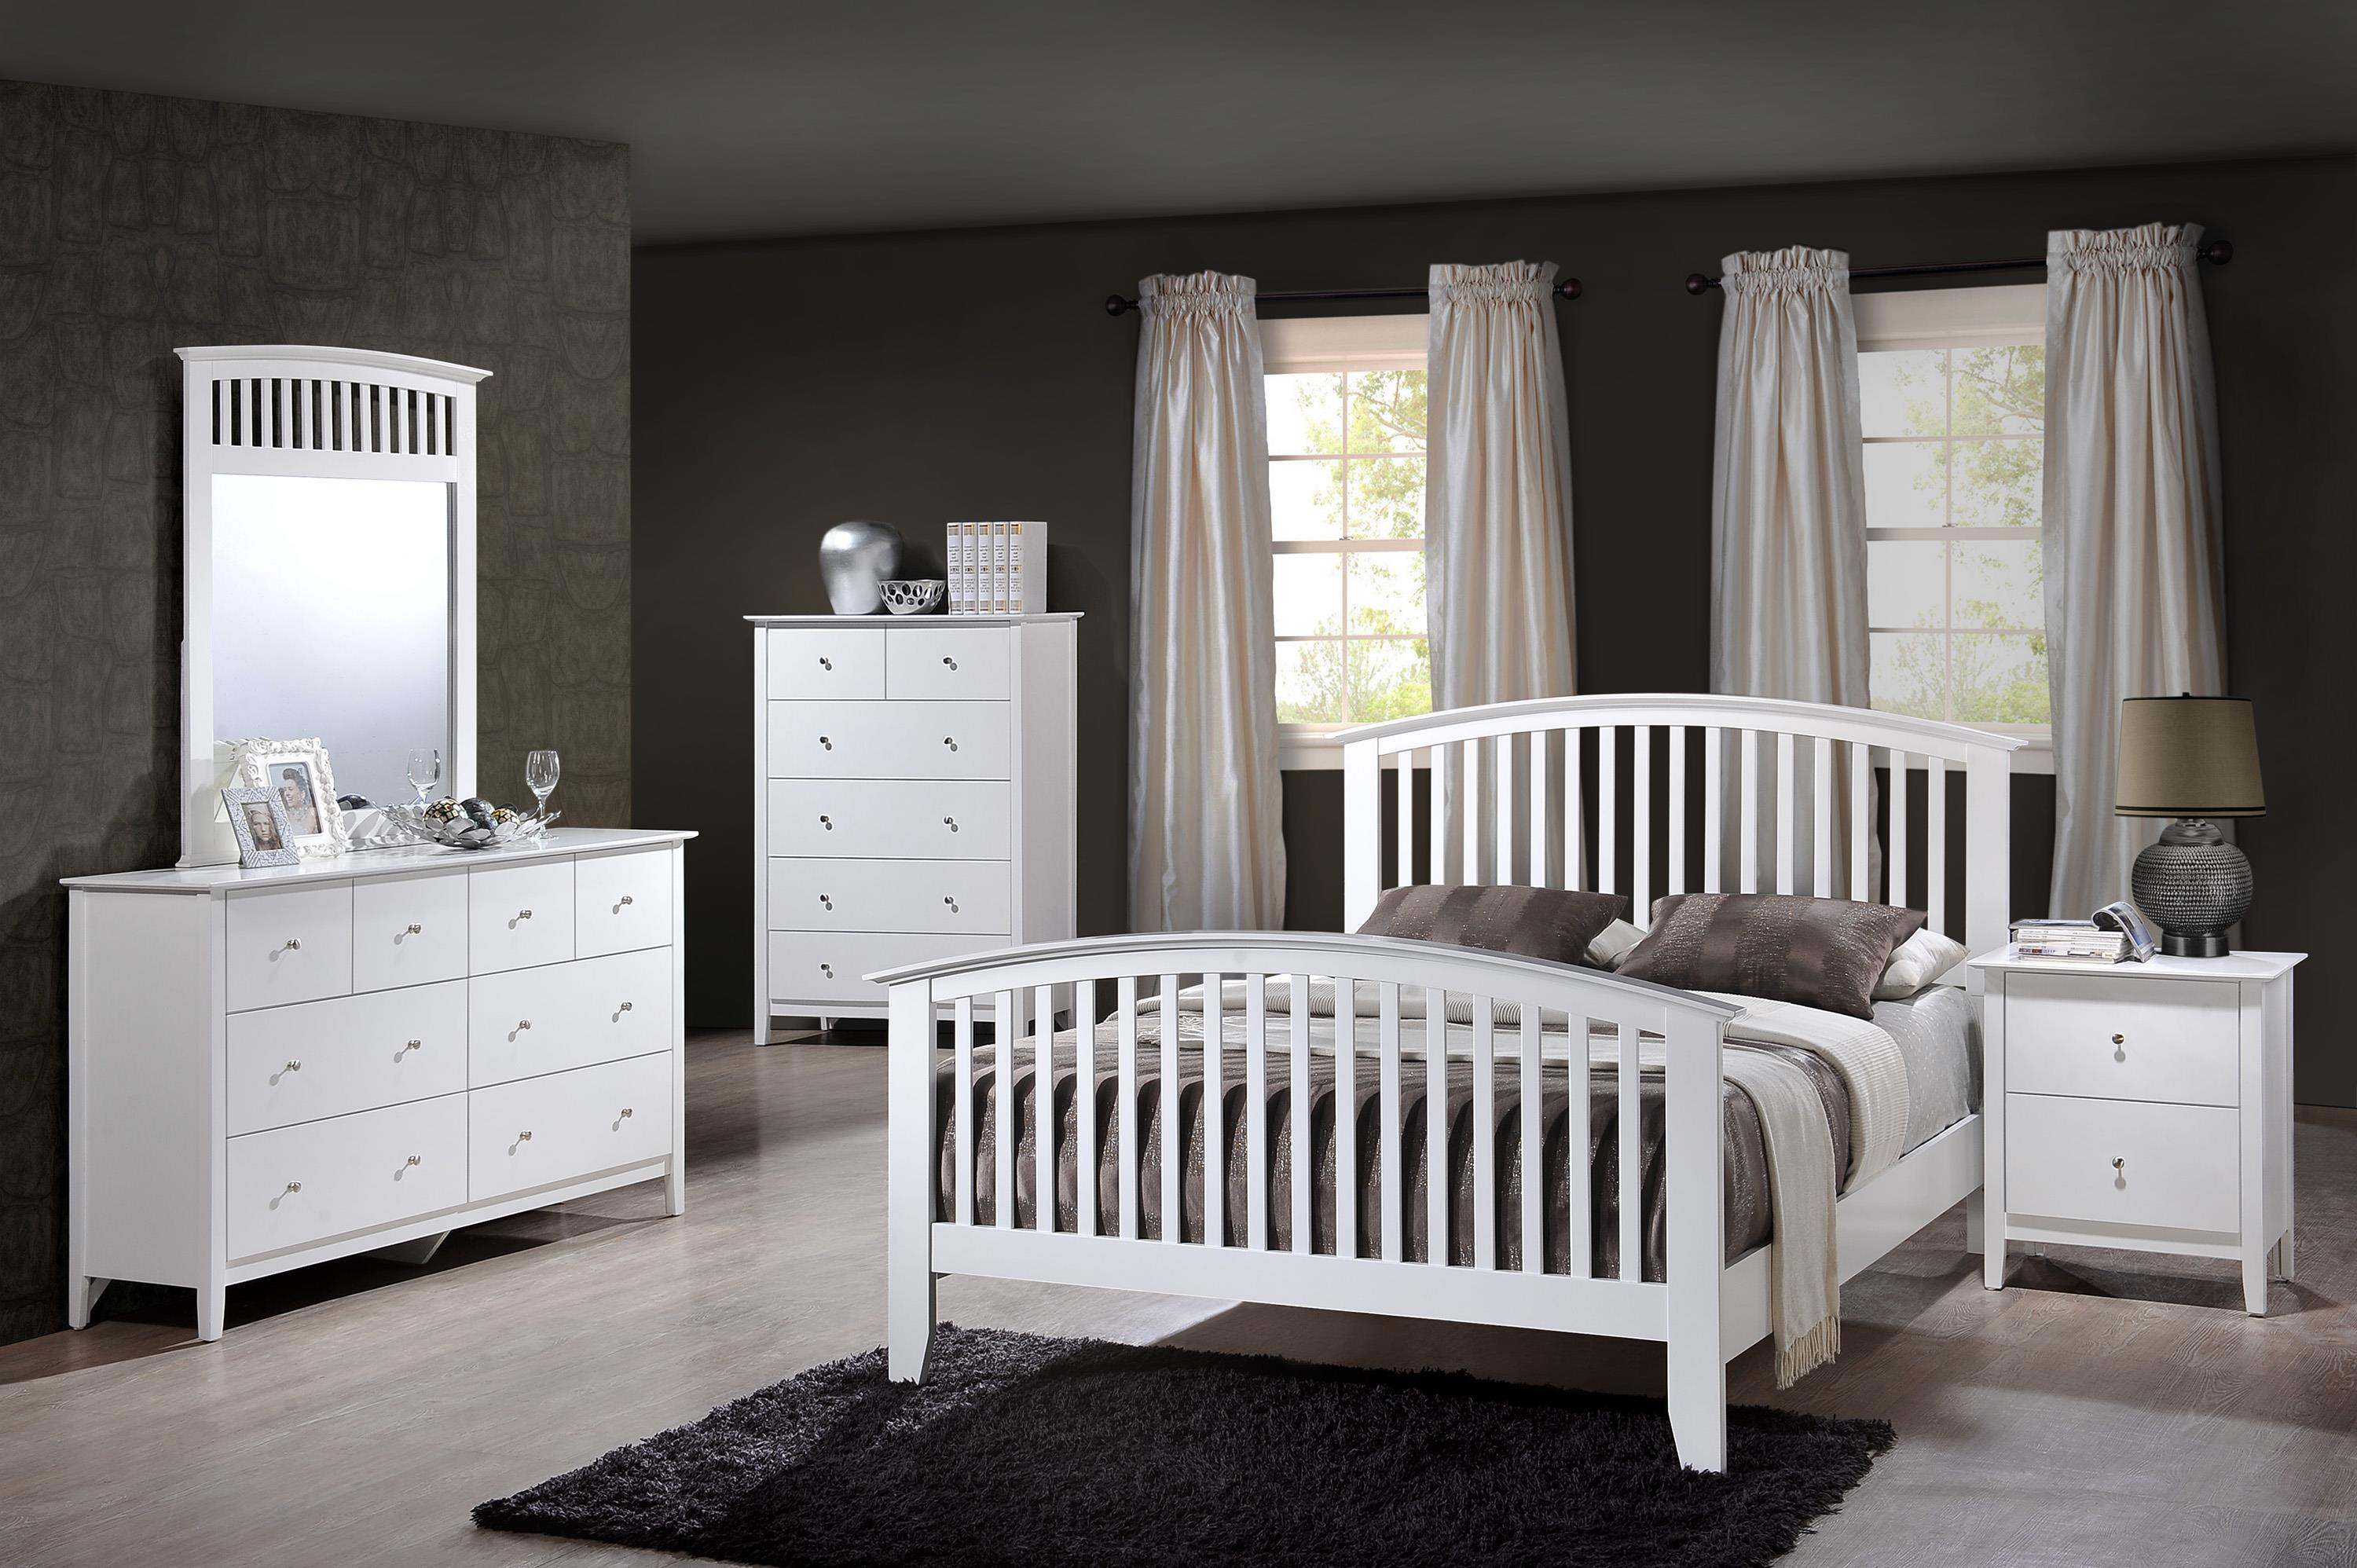 Crown Mark Lawson King Bedroom Group - Item Number: B7500 K Bedroom Group 1